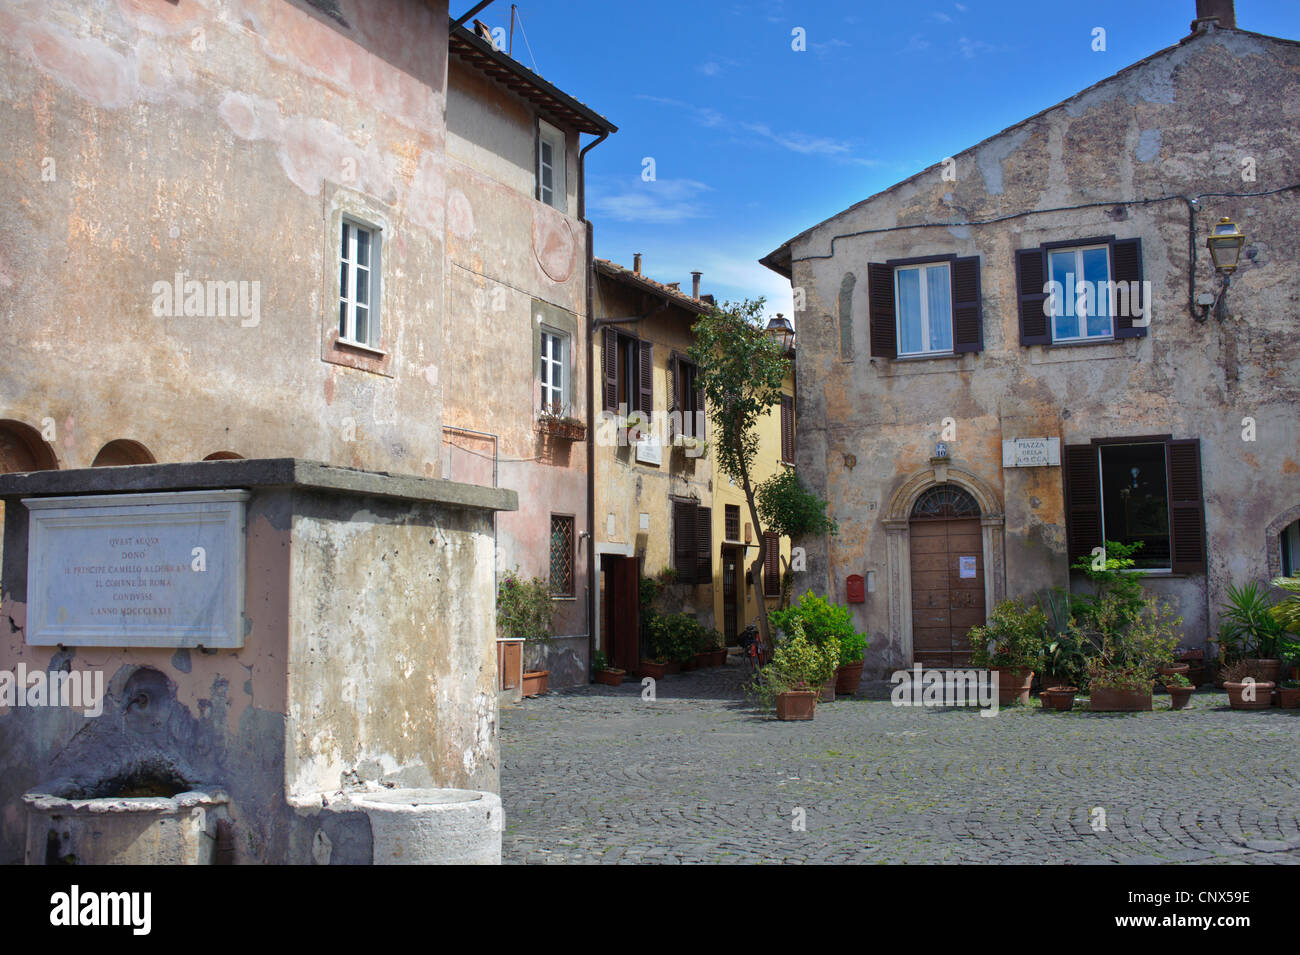 Town square of Ostia Italy - Stock Image